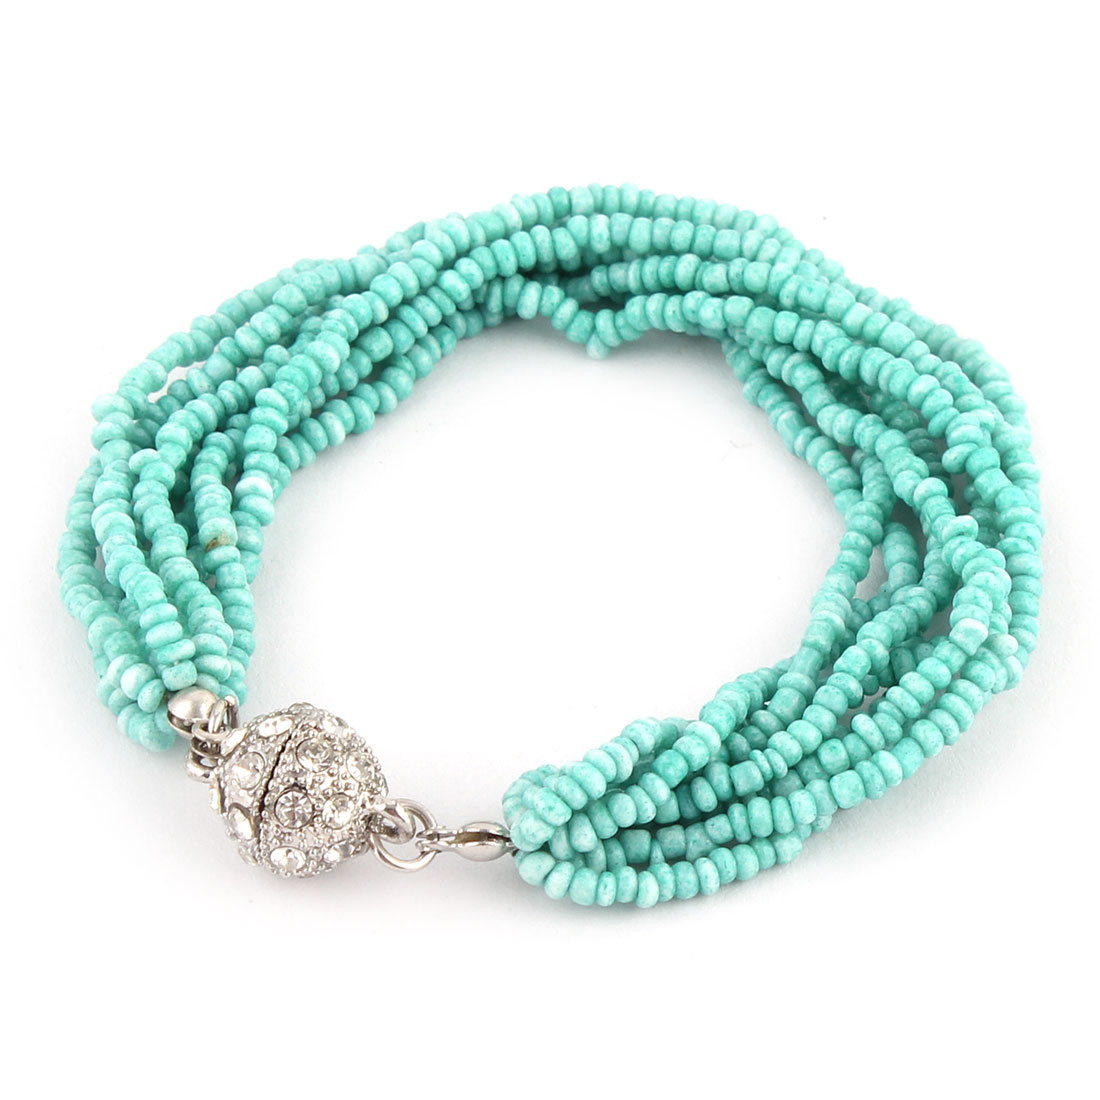 Lady Party Rhinestoe Decor Eight Layers Chain Beads Bracelet Bangle Silver Tone Turquoise Color